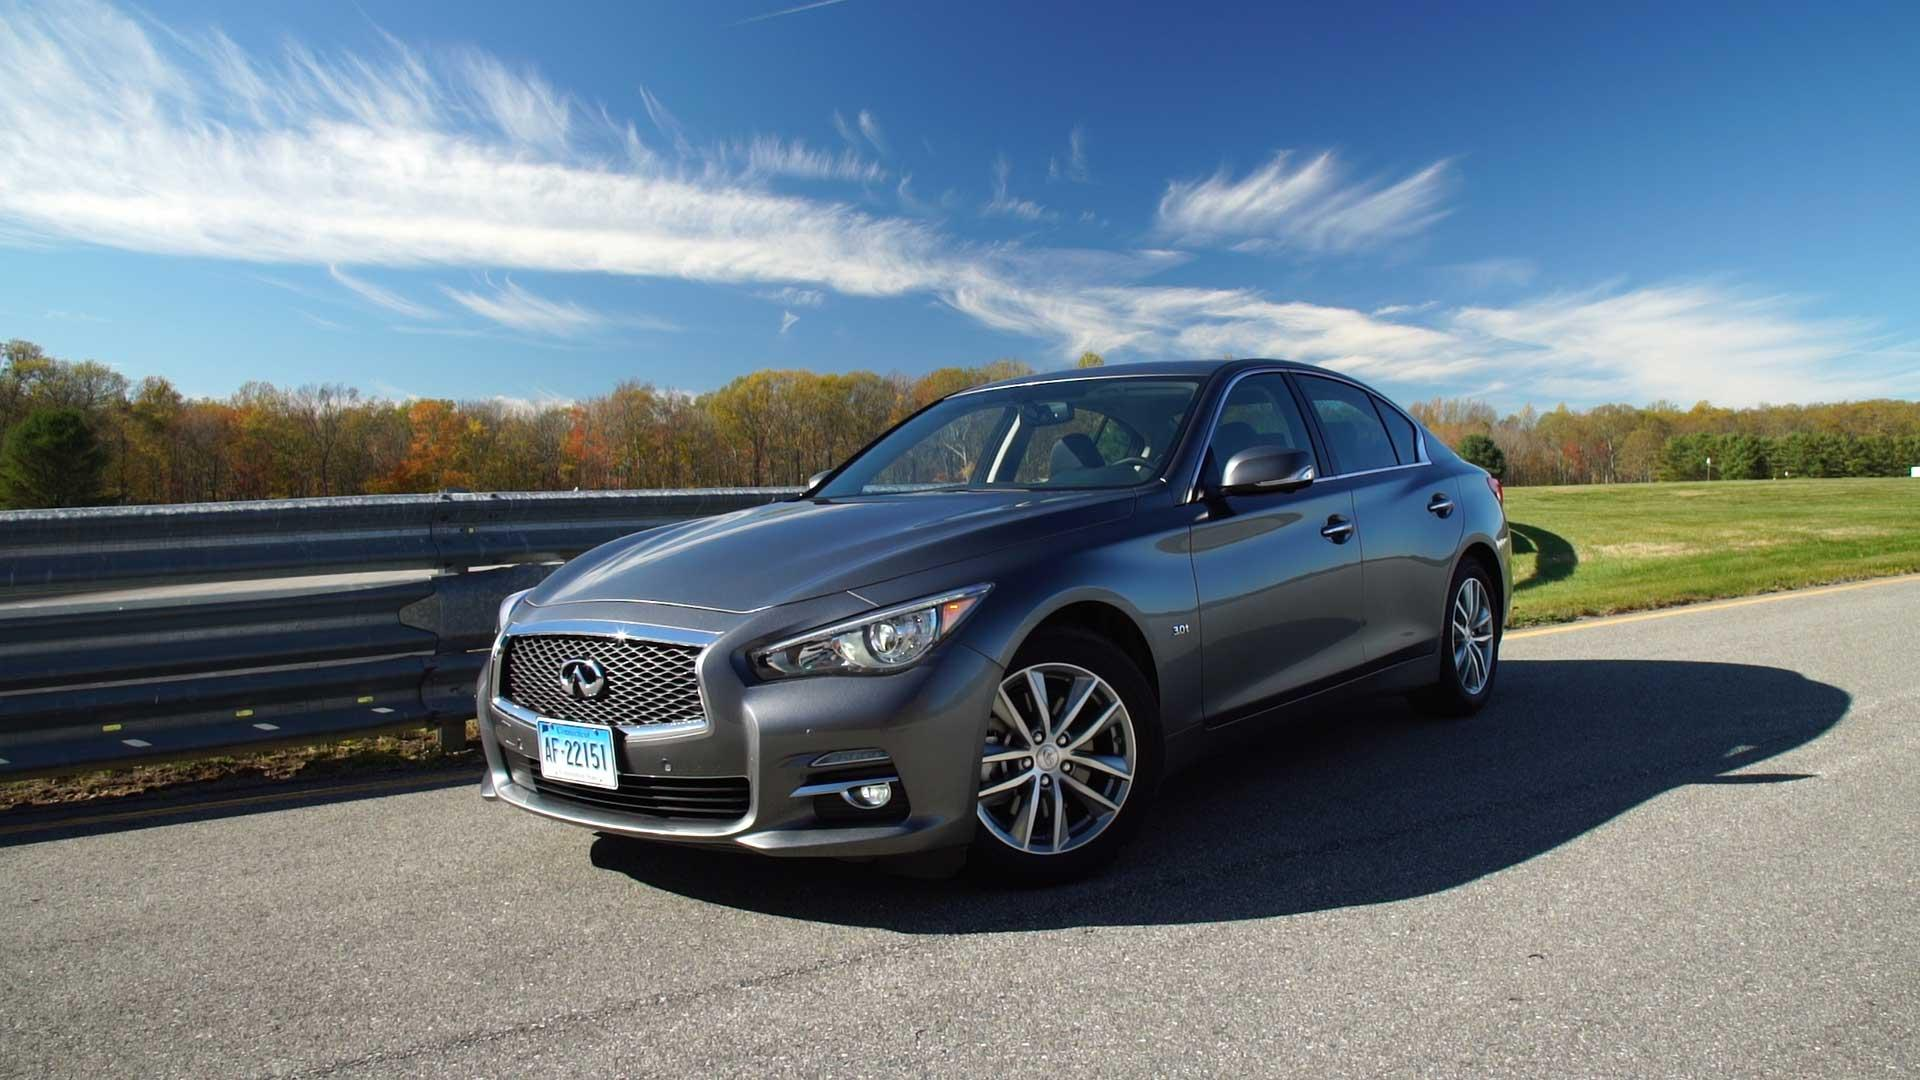 2016 infiniti q50 review performance over panache consumer reports. Black Bedroom Furniture Sets. Home Design Ideas